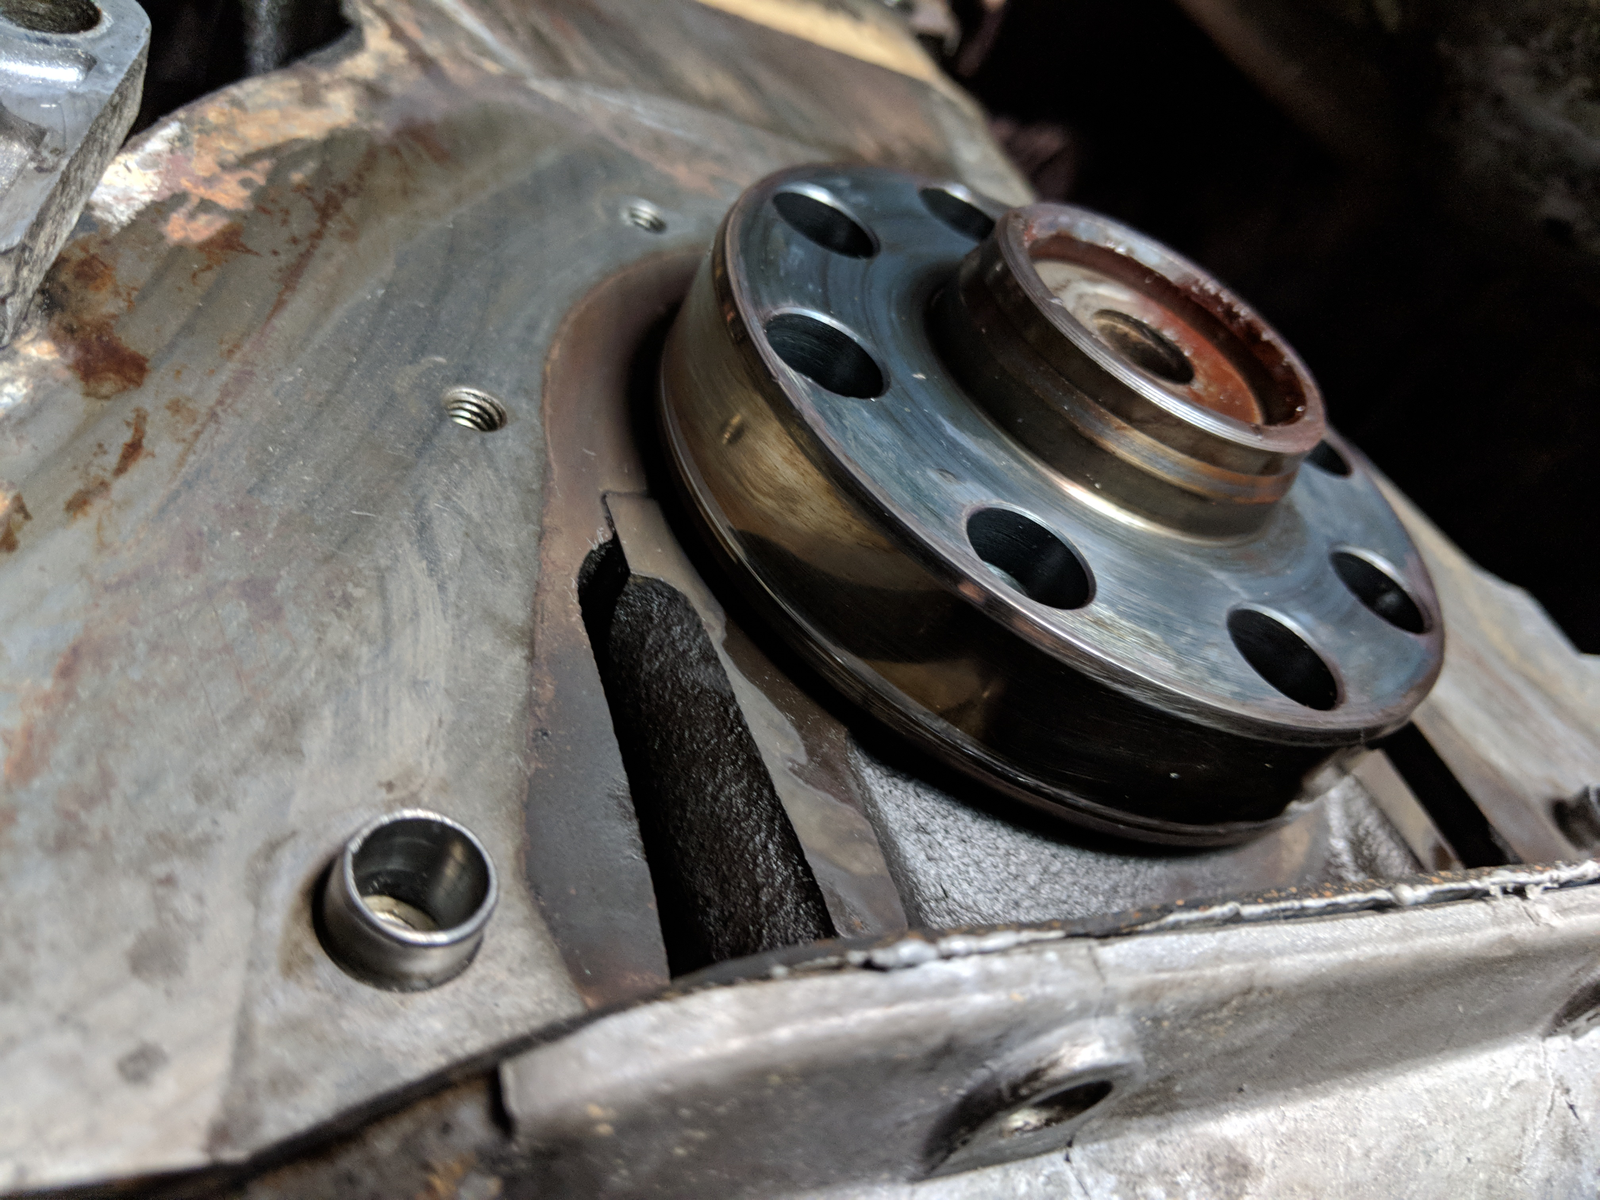 Thankfully no visible scoring on the crankshaft with the rear main seal and housing removed.